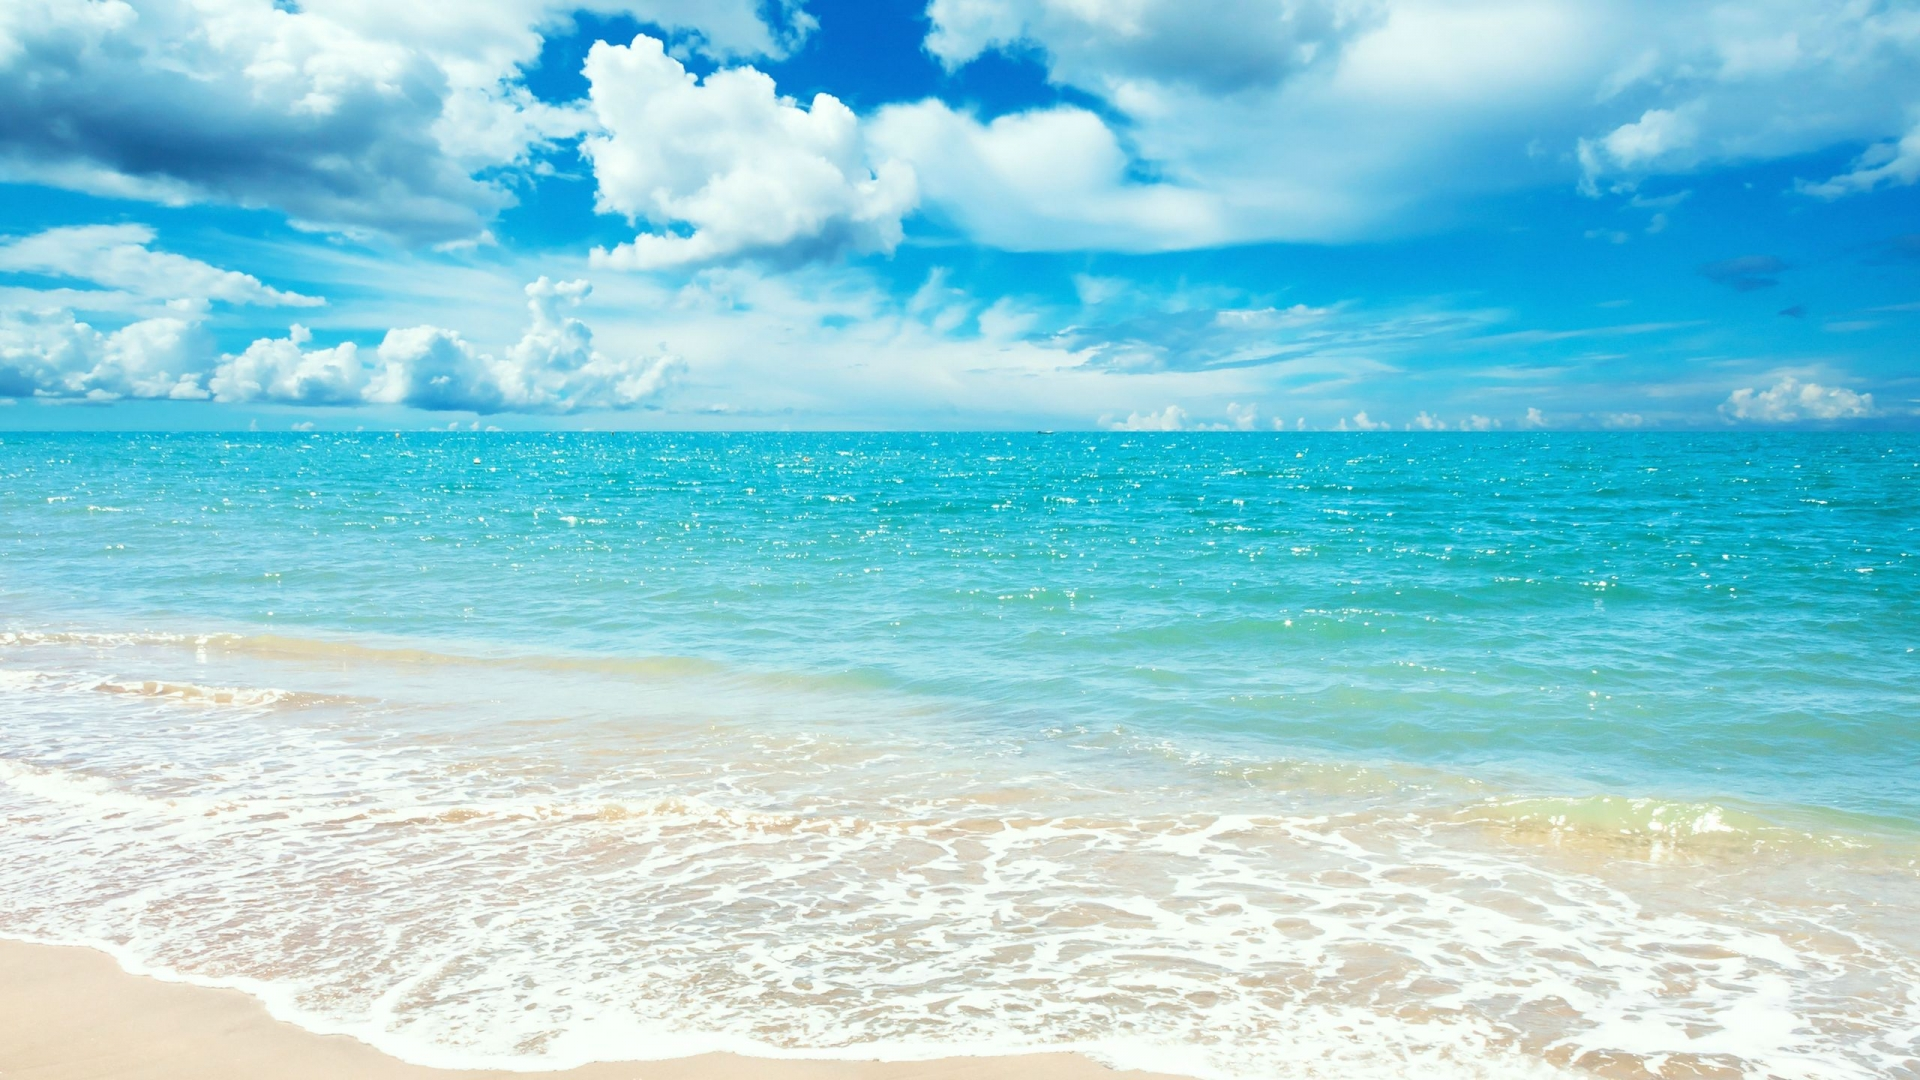 Summer Wallpaper HD Widescreen ImageBankbiz 1920x1080